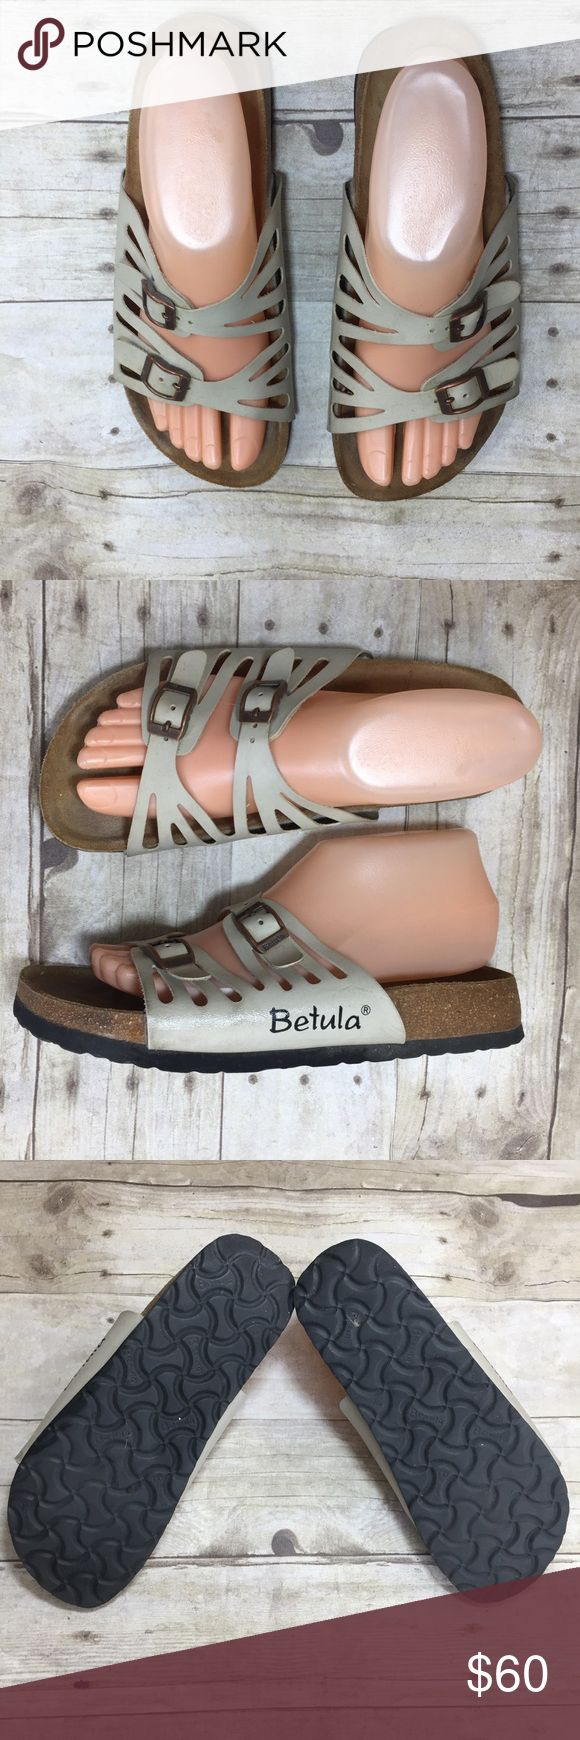 BIRKENSTOCK BETULA Sandals Tan Strap Granada 38 Beautiful tan sandals perfect for summer. The tan/beige color goes with anything. The sandals are in great used condition. Please see photos. Get them before they are gone. Birkenstock Shoes Sandals